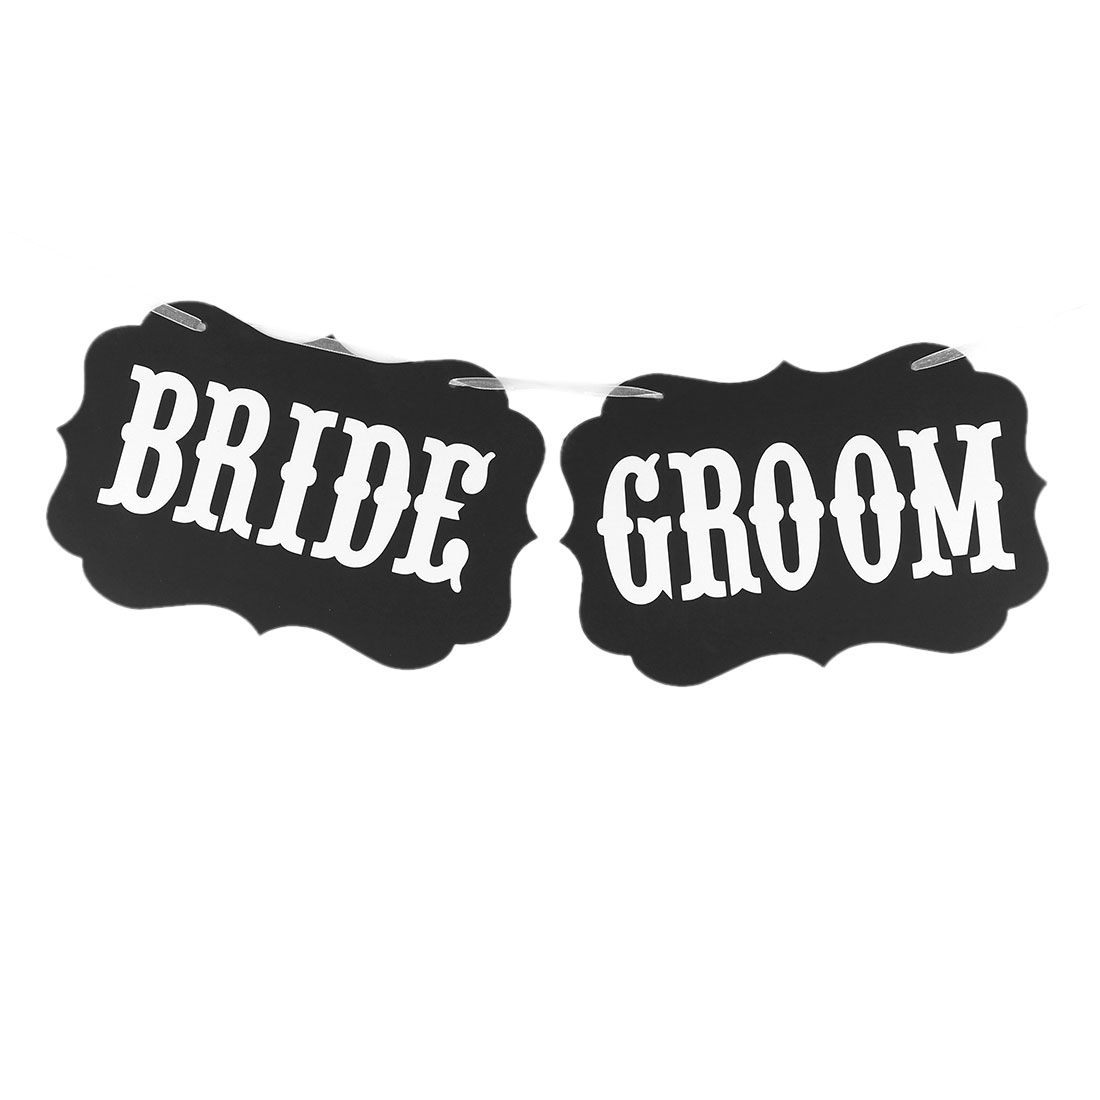 BRIDE GROOM Letter Pattern Wedding Party DIY Decor Photo Prop Banner White Black